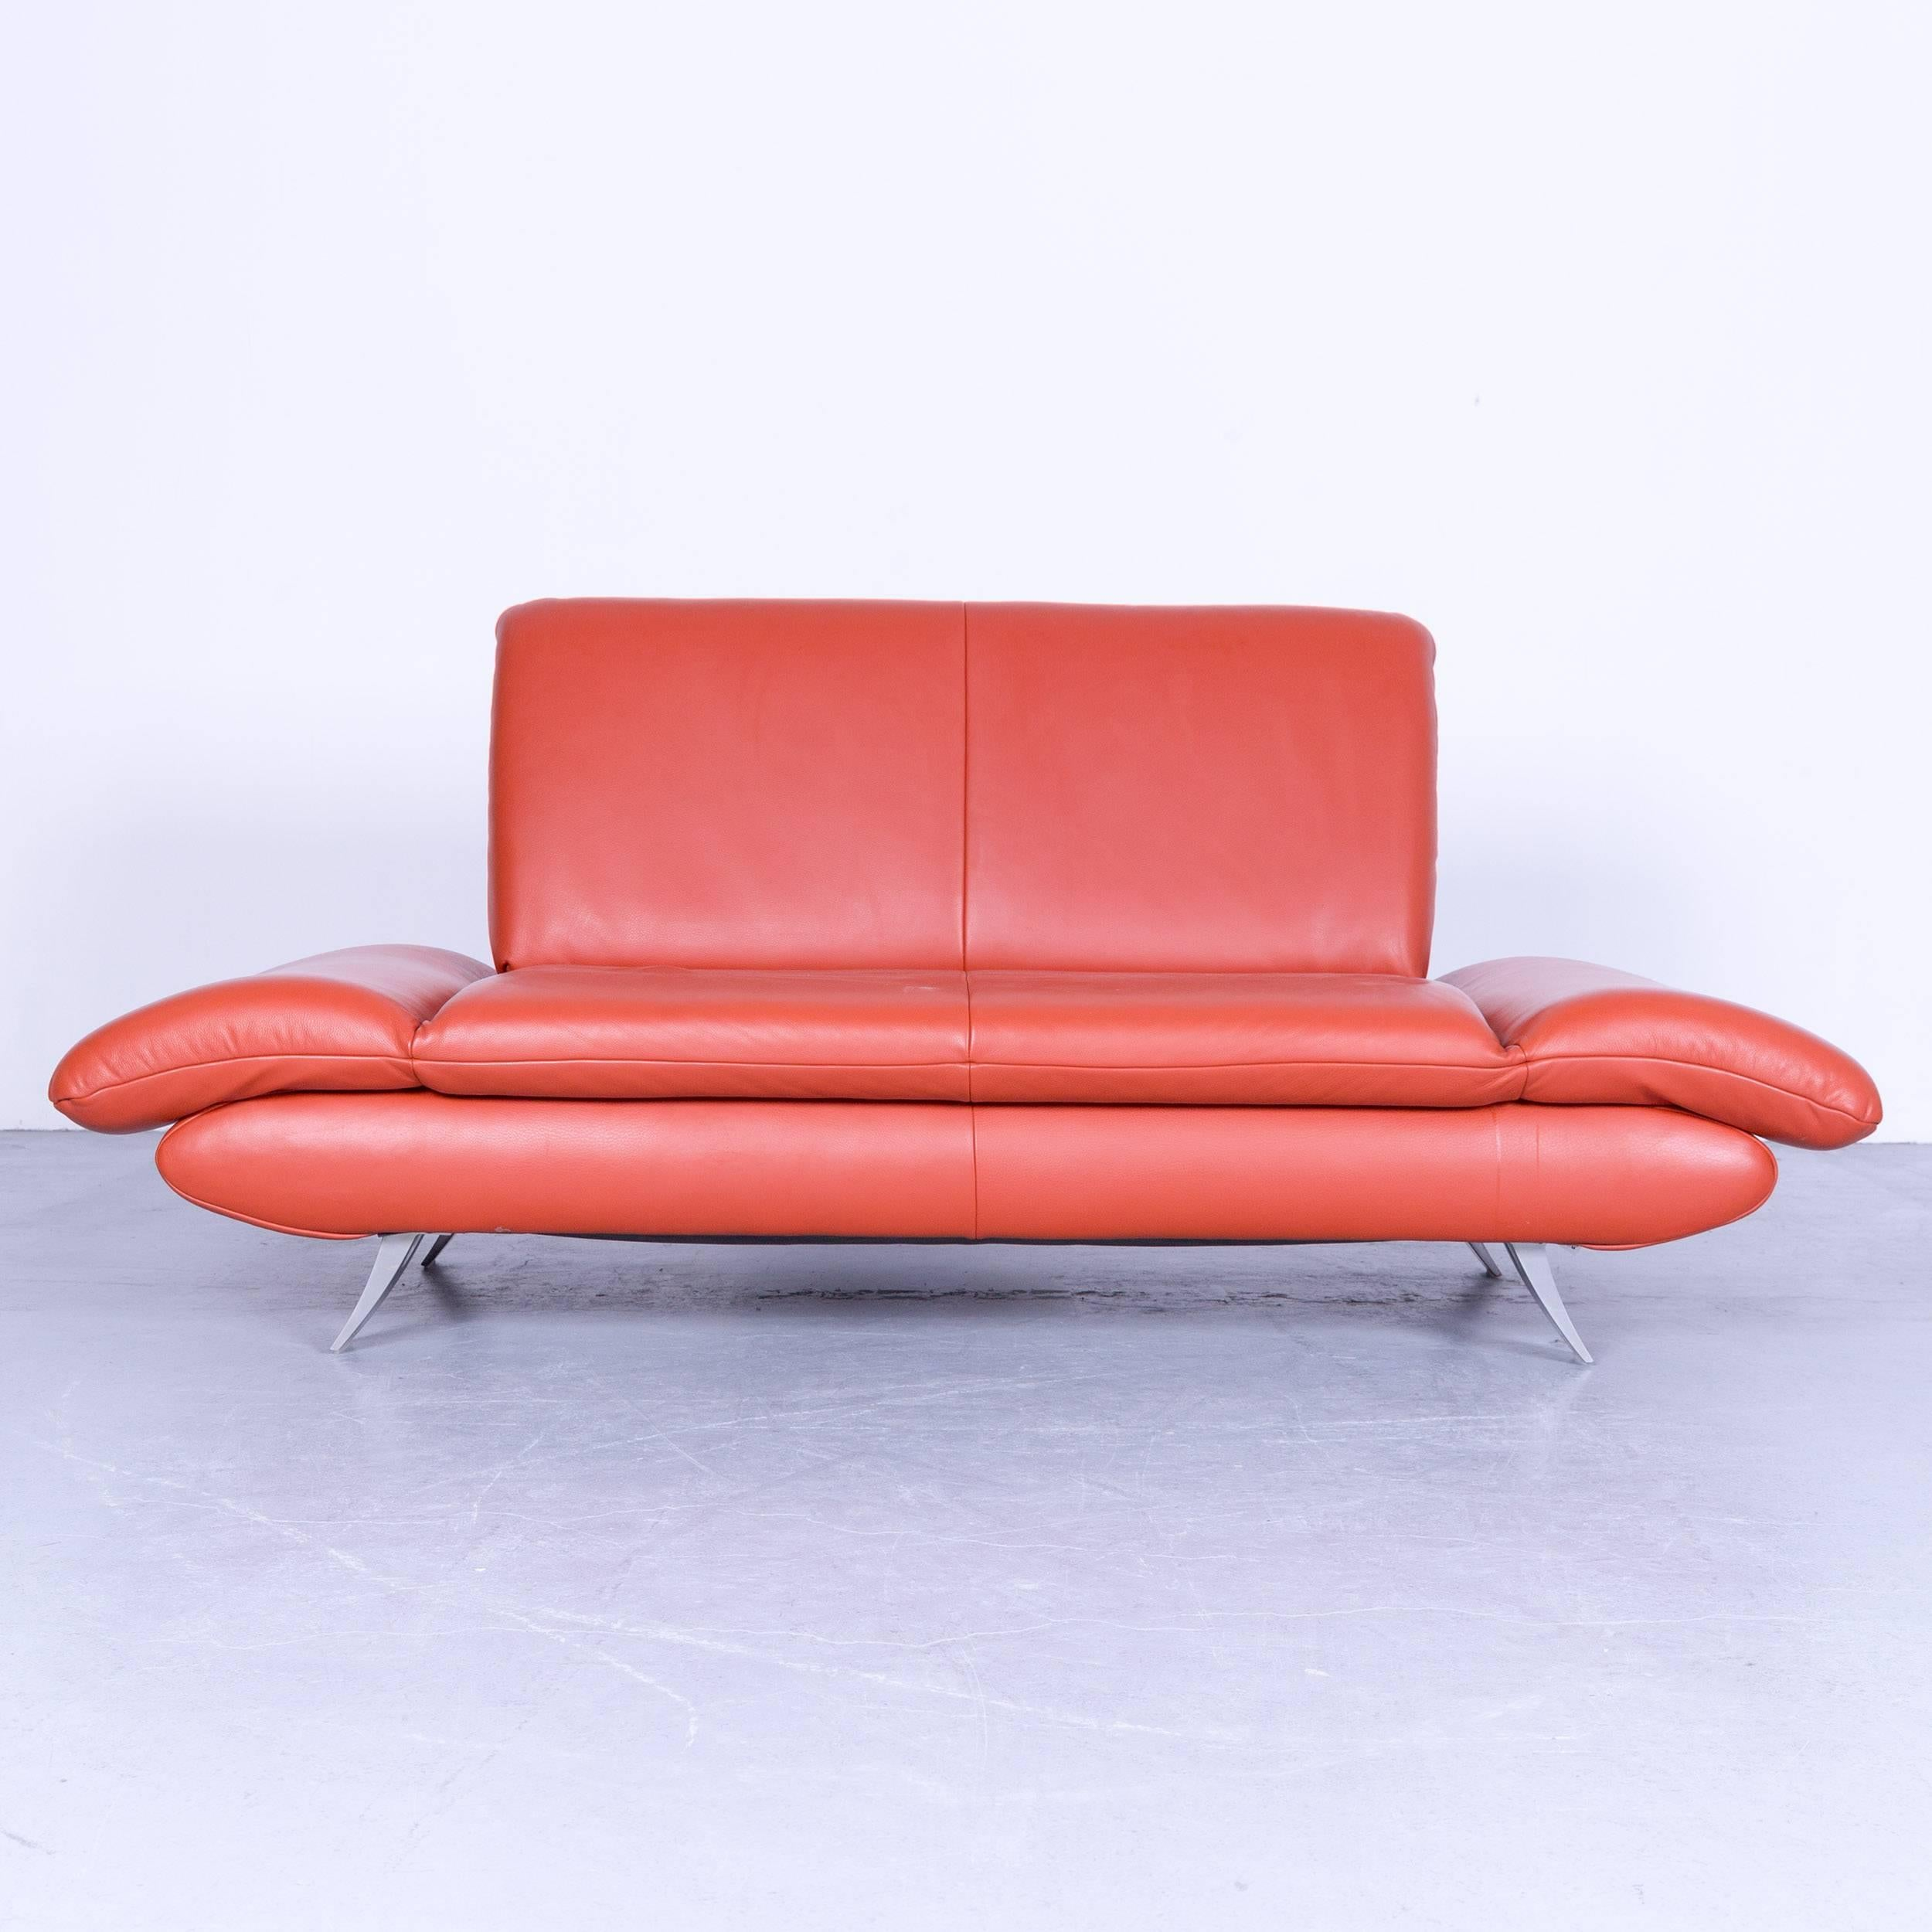 Koinor Rossini Designer Leather Sofa Red Leather Function Two Seat In A  Minimalistic And Modern